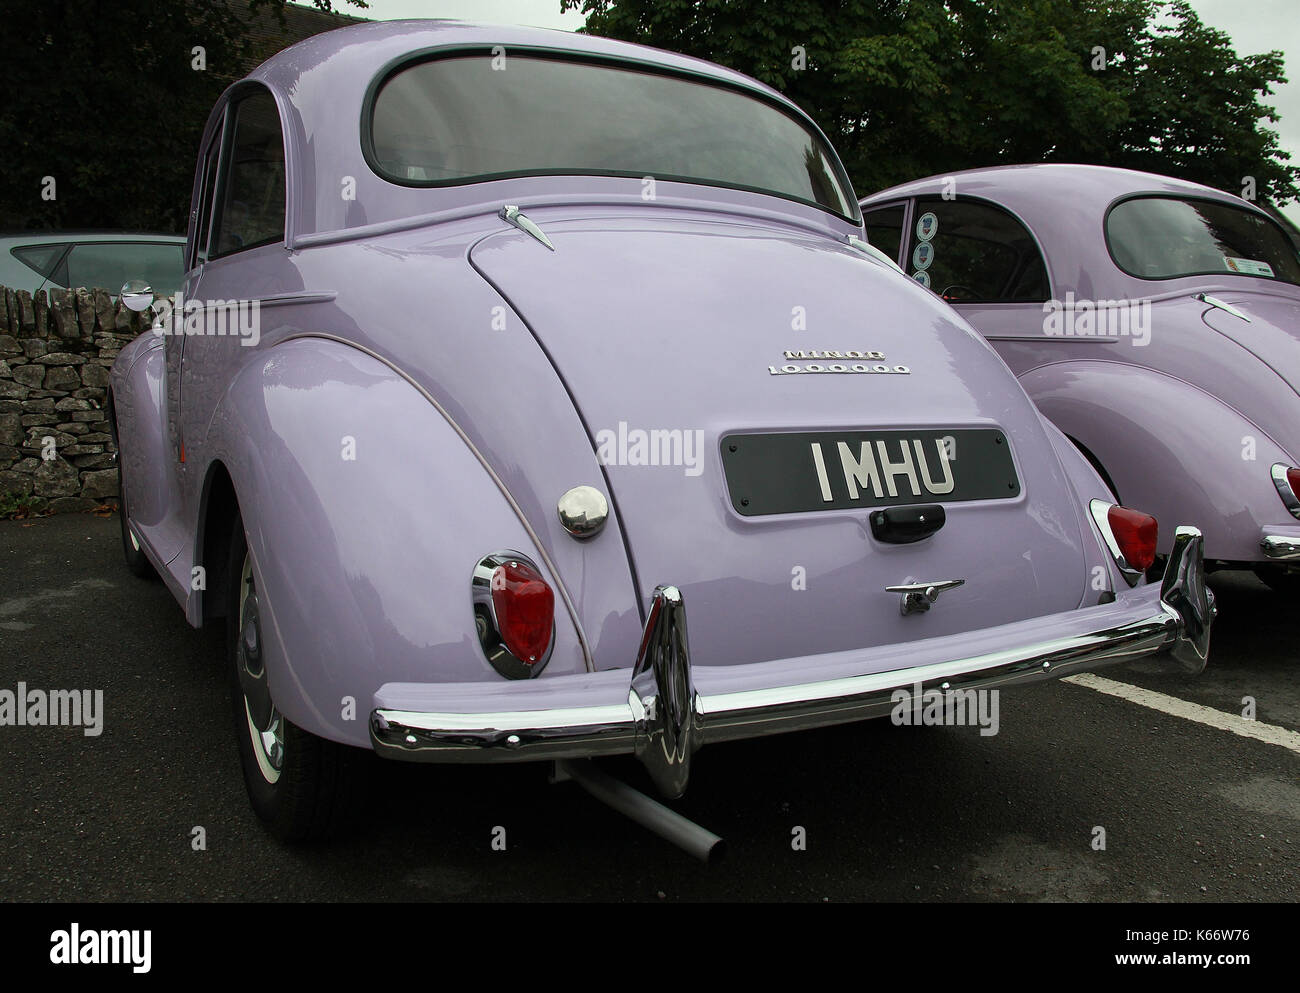 Mauve Car Stock Photos Mauve Car Stock Images Alamy